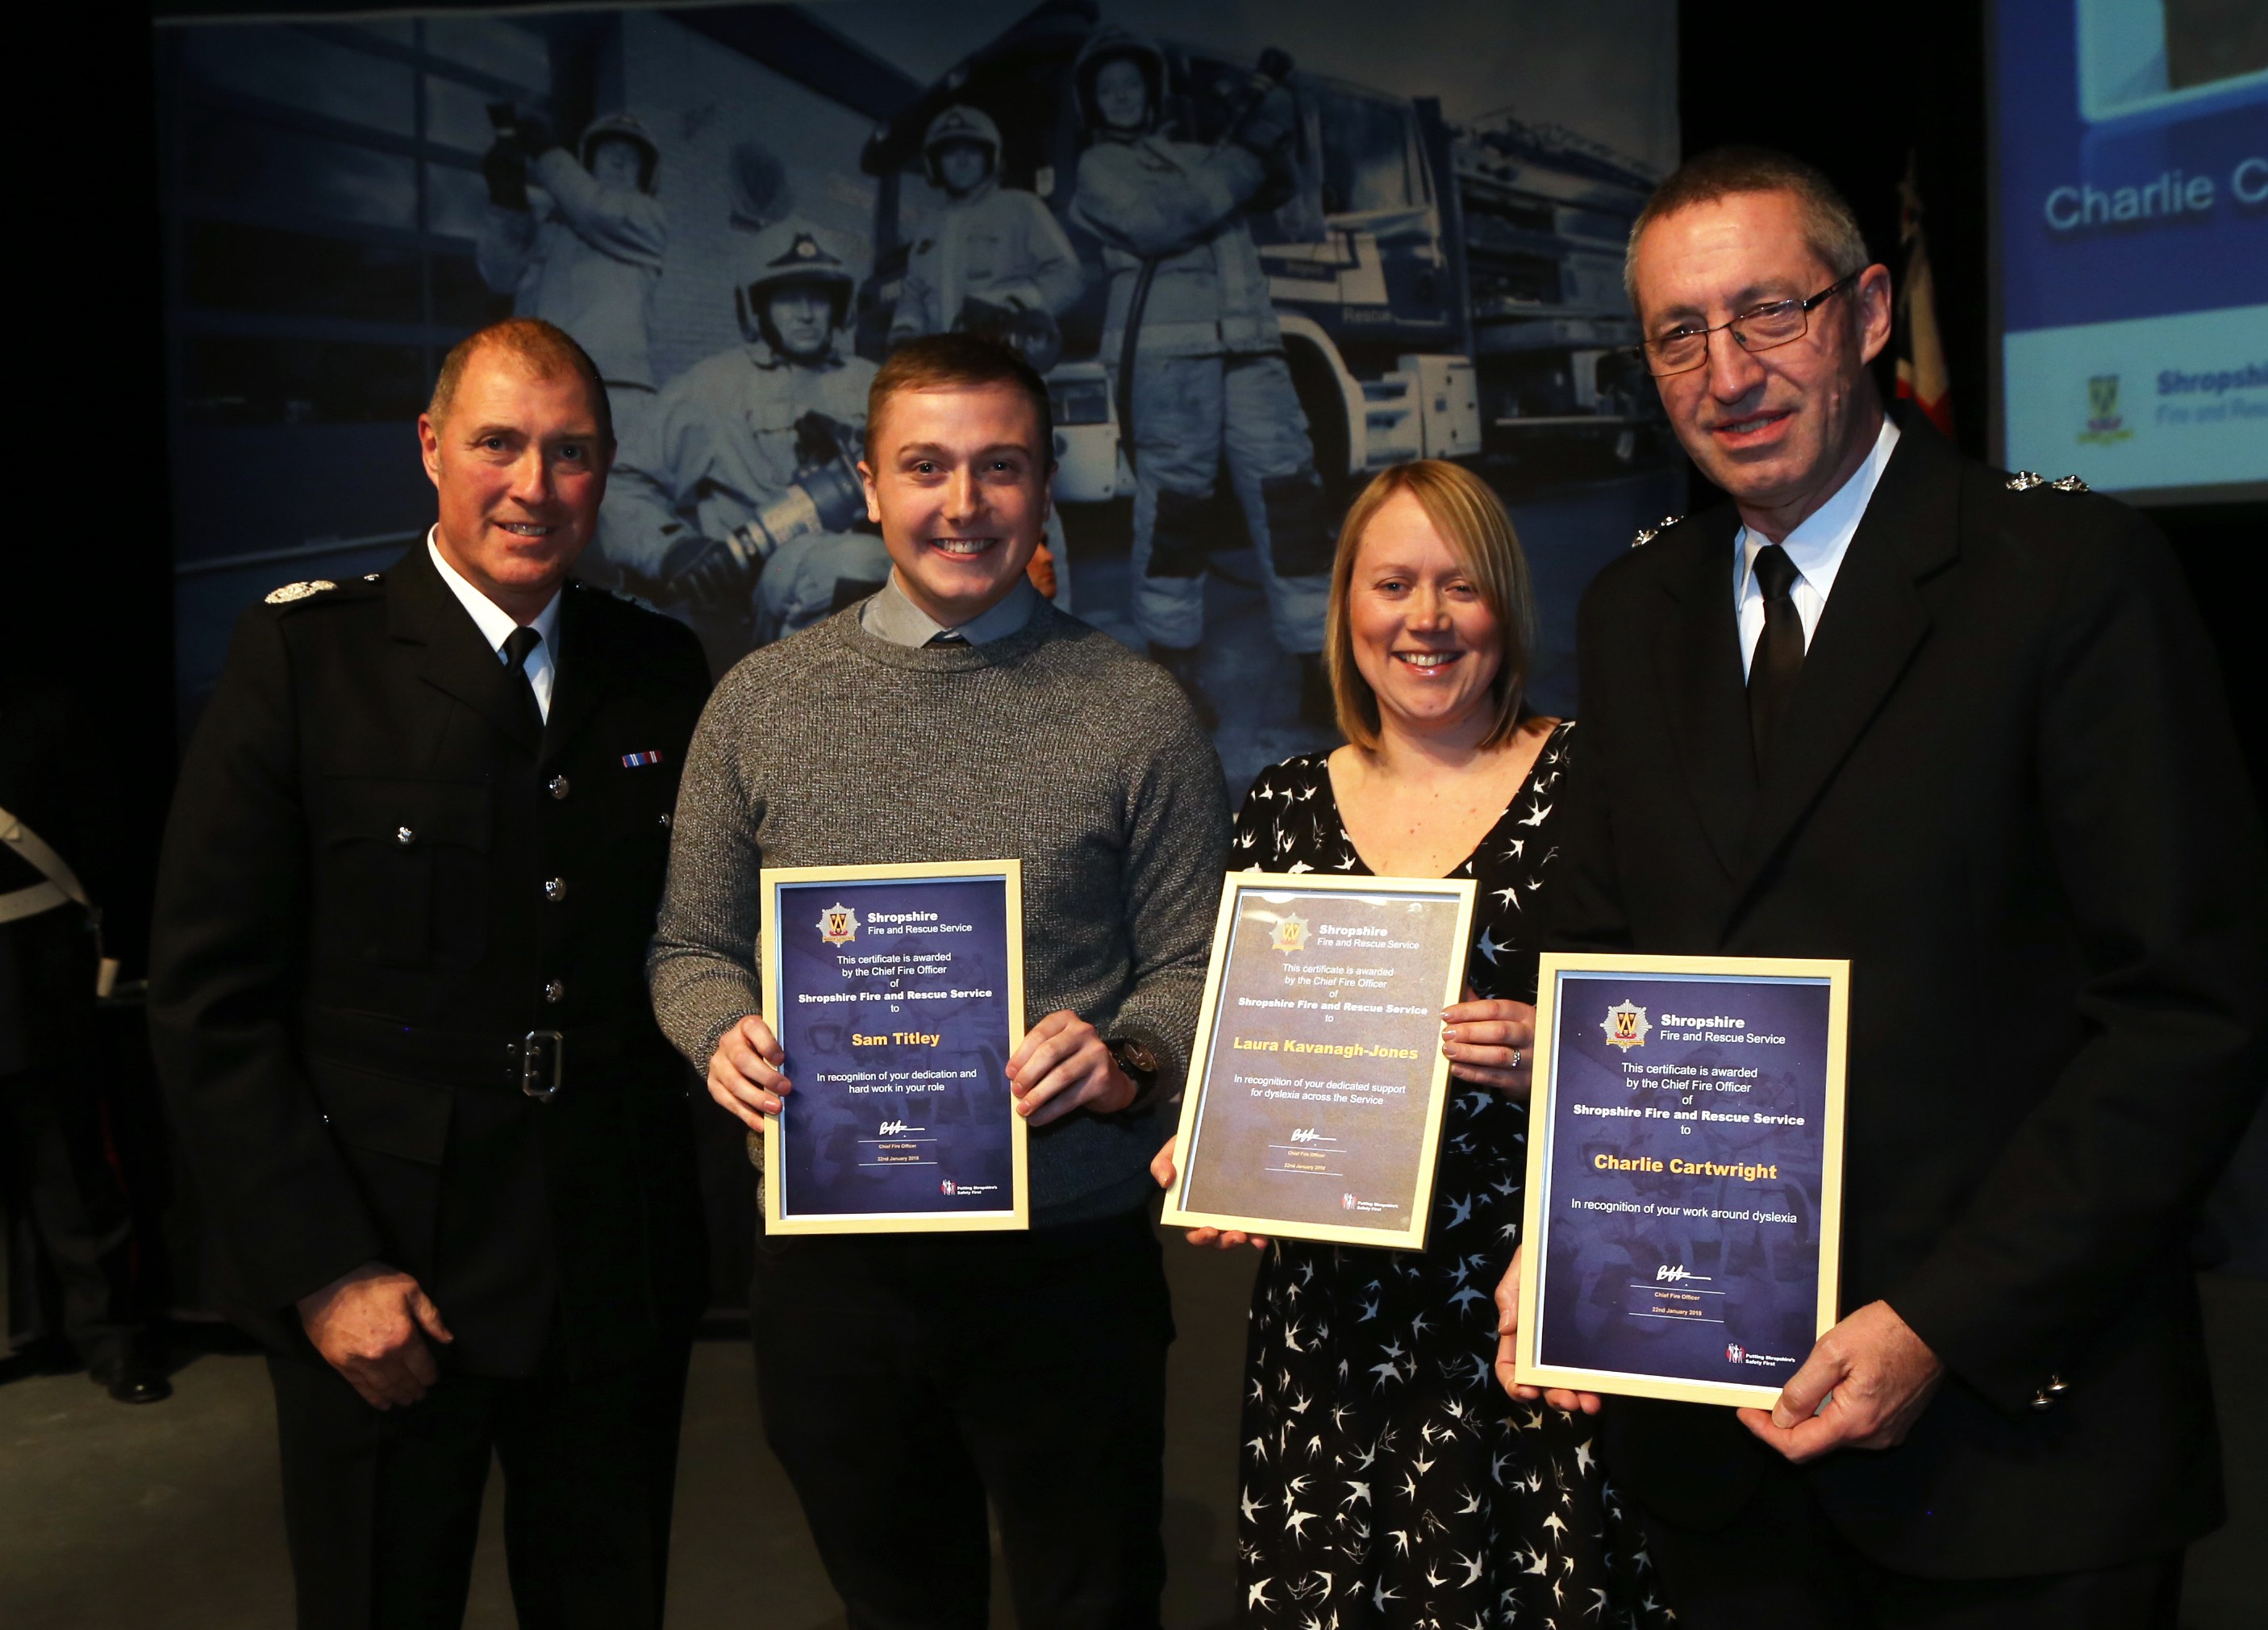 Sam Titley, Laura Kavanagh-Jones and Charlie Cartwright were applauded for their work with dyslexia